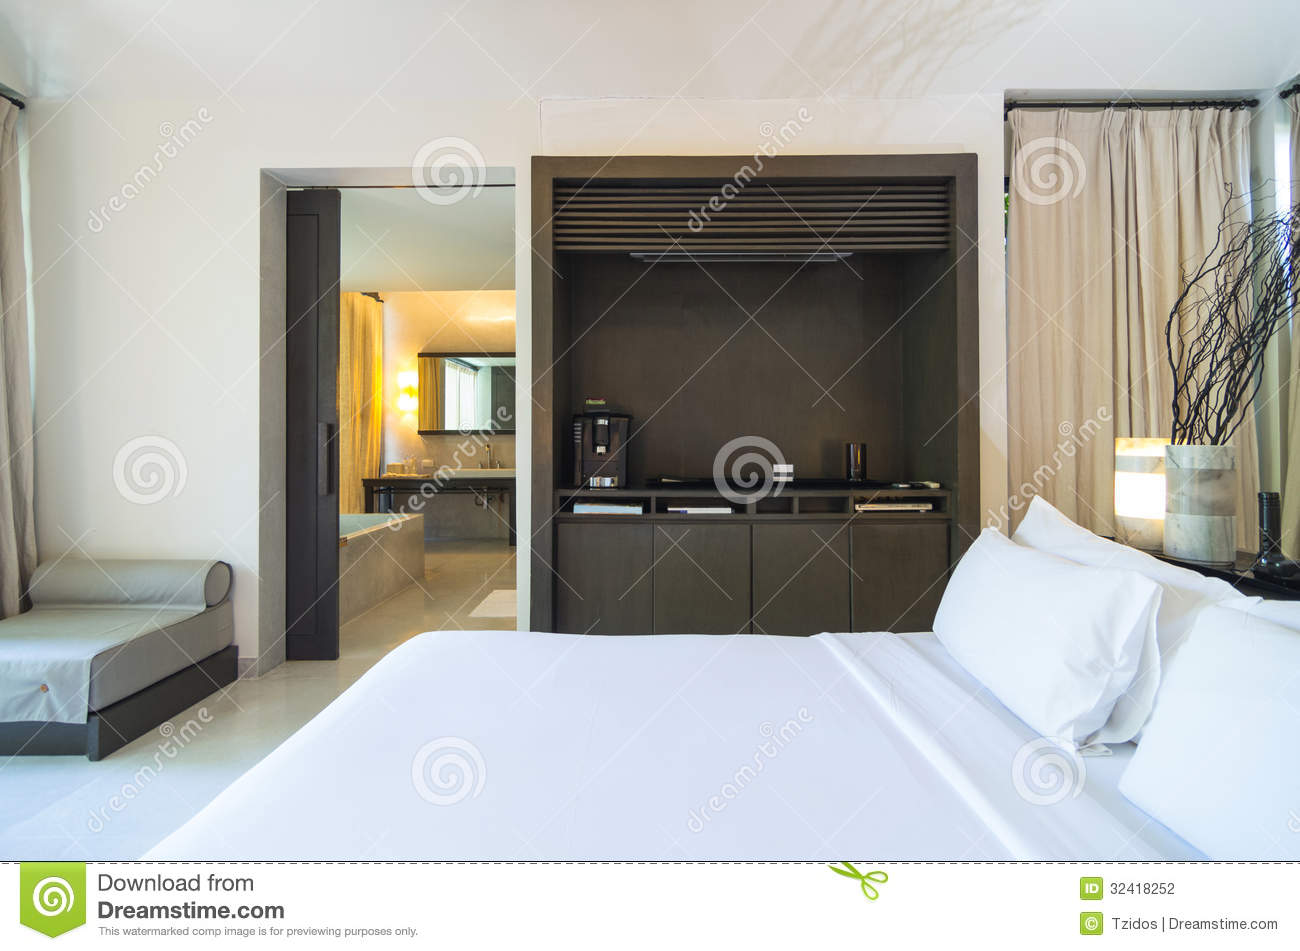 Modern Bedroom Connect With Bathroom Interior Design Stock Photo Image 32418252